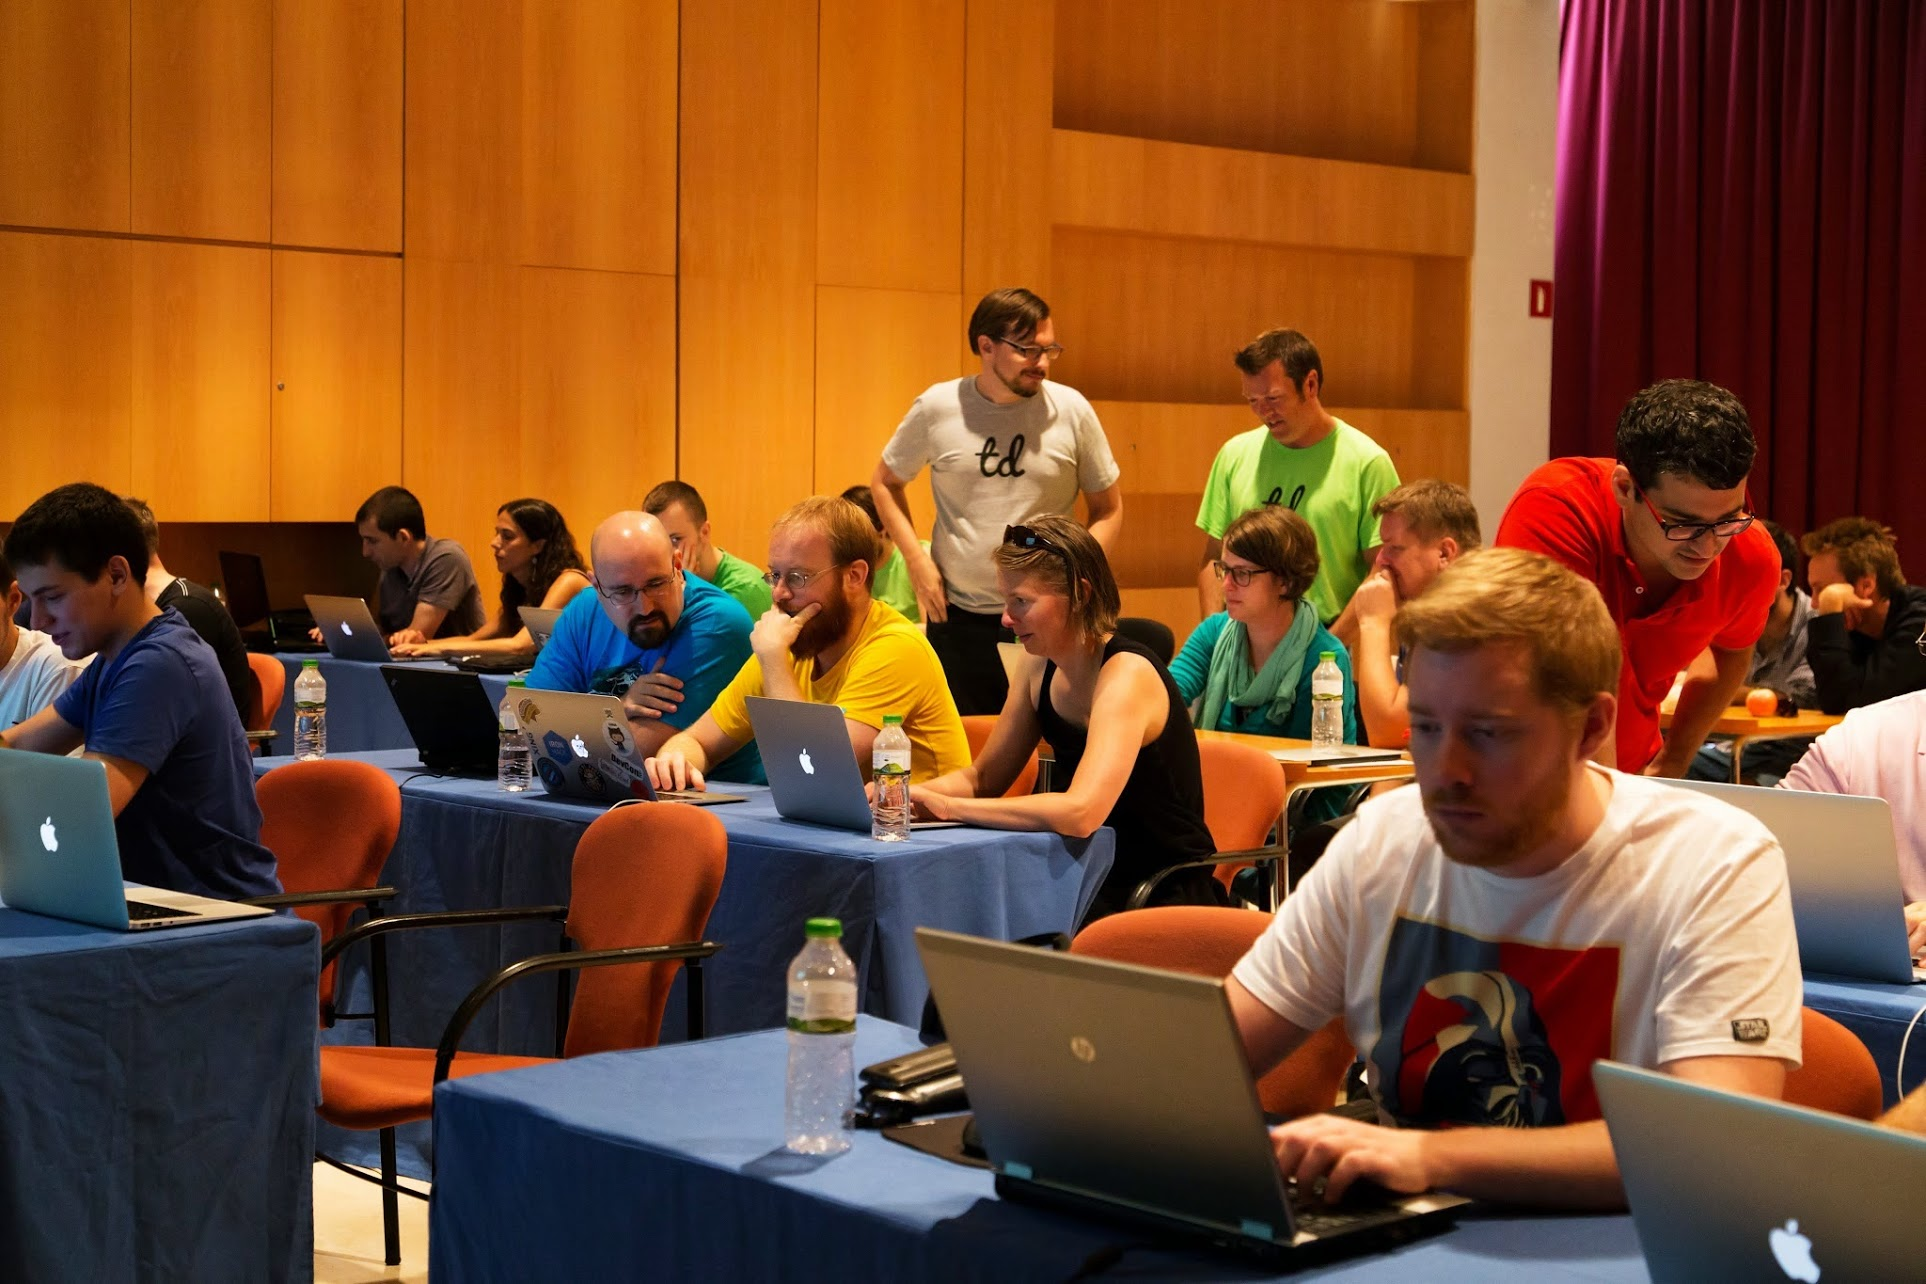 """"""" The JavaScript testing workshop that    @ toddkaufman   &    @  TheOtherZach    are leading is packed and looks awesome!"""""""